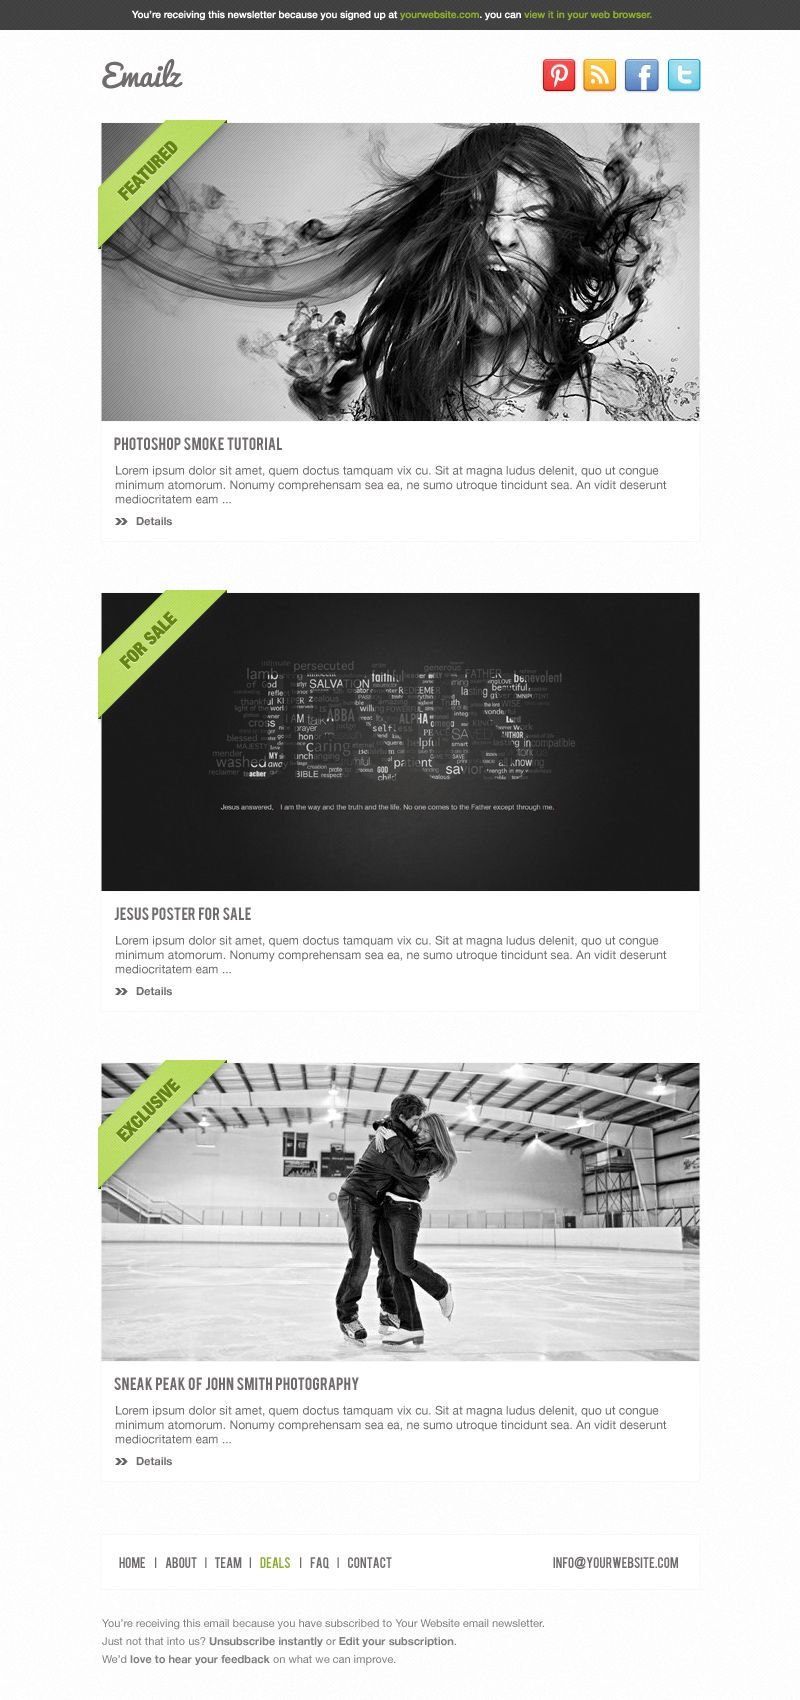 Email Template 5 | Best PSD Freebies    www.bestpsdfreebies.com/freebie/pay-with-a-tweet-friday-free-email-template-psd-with-5-variations/